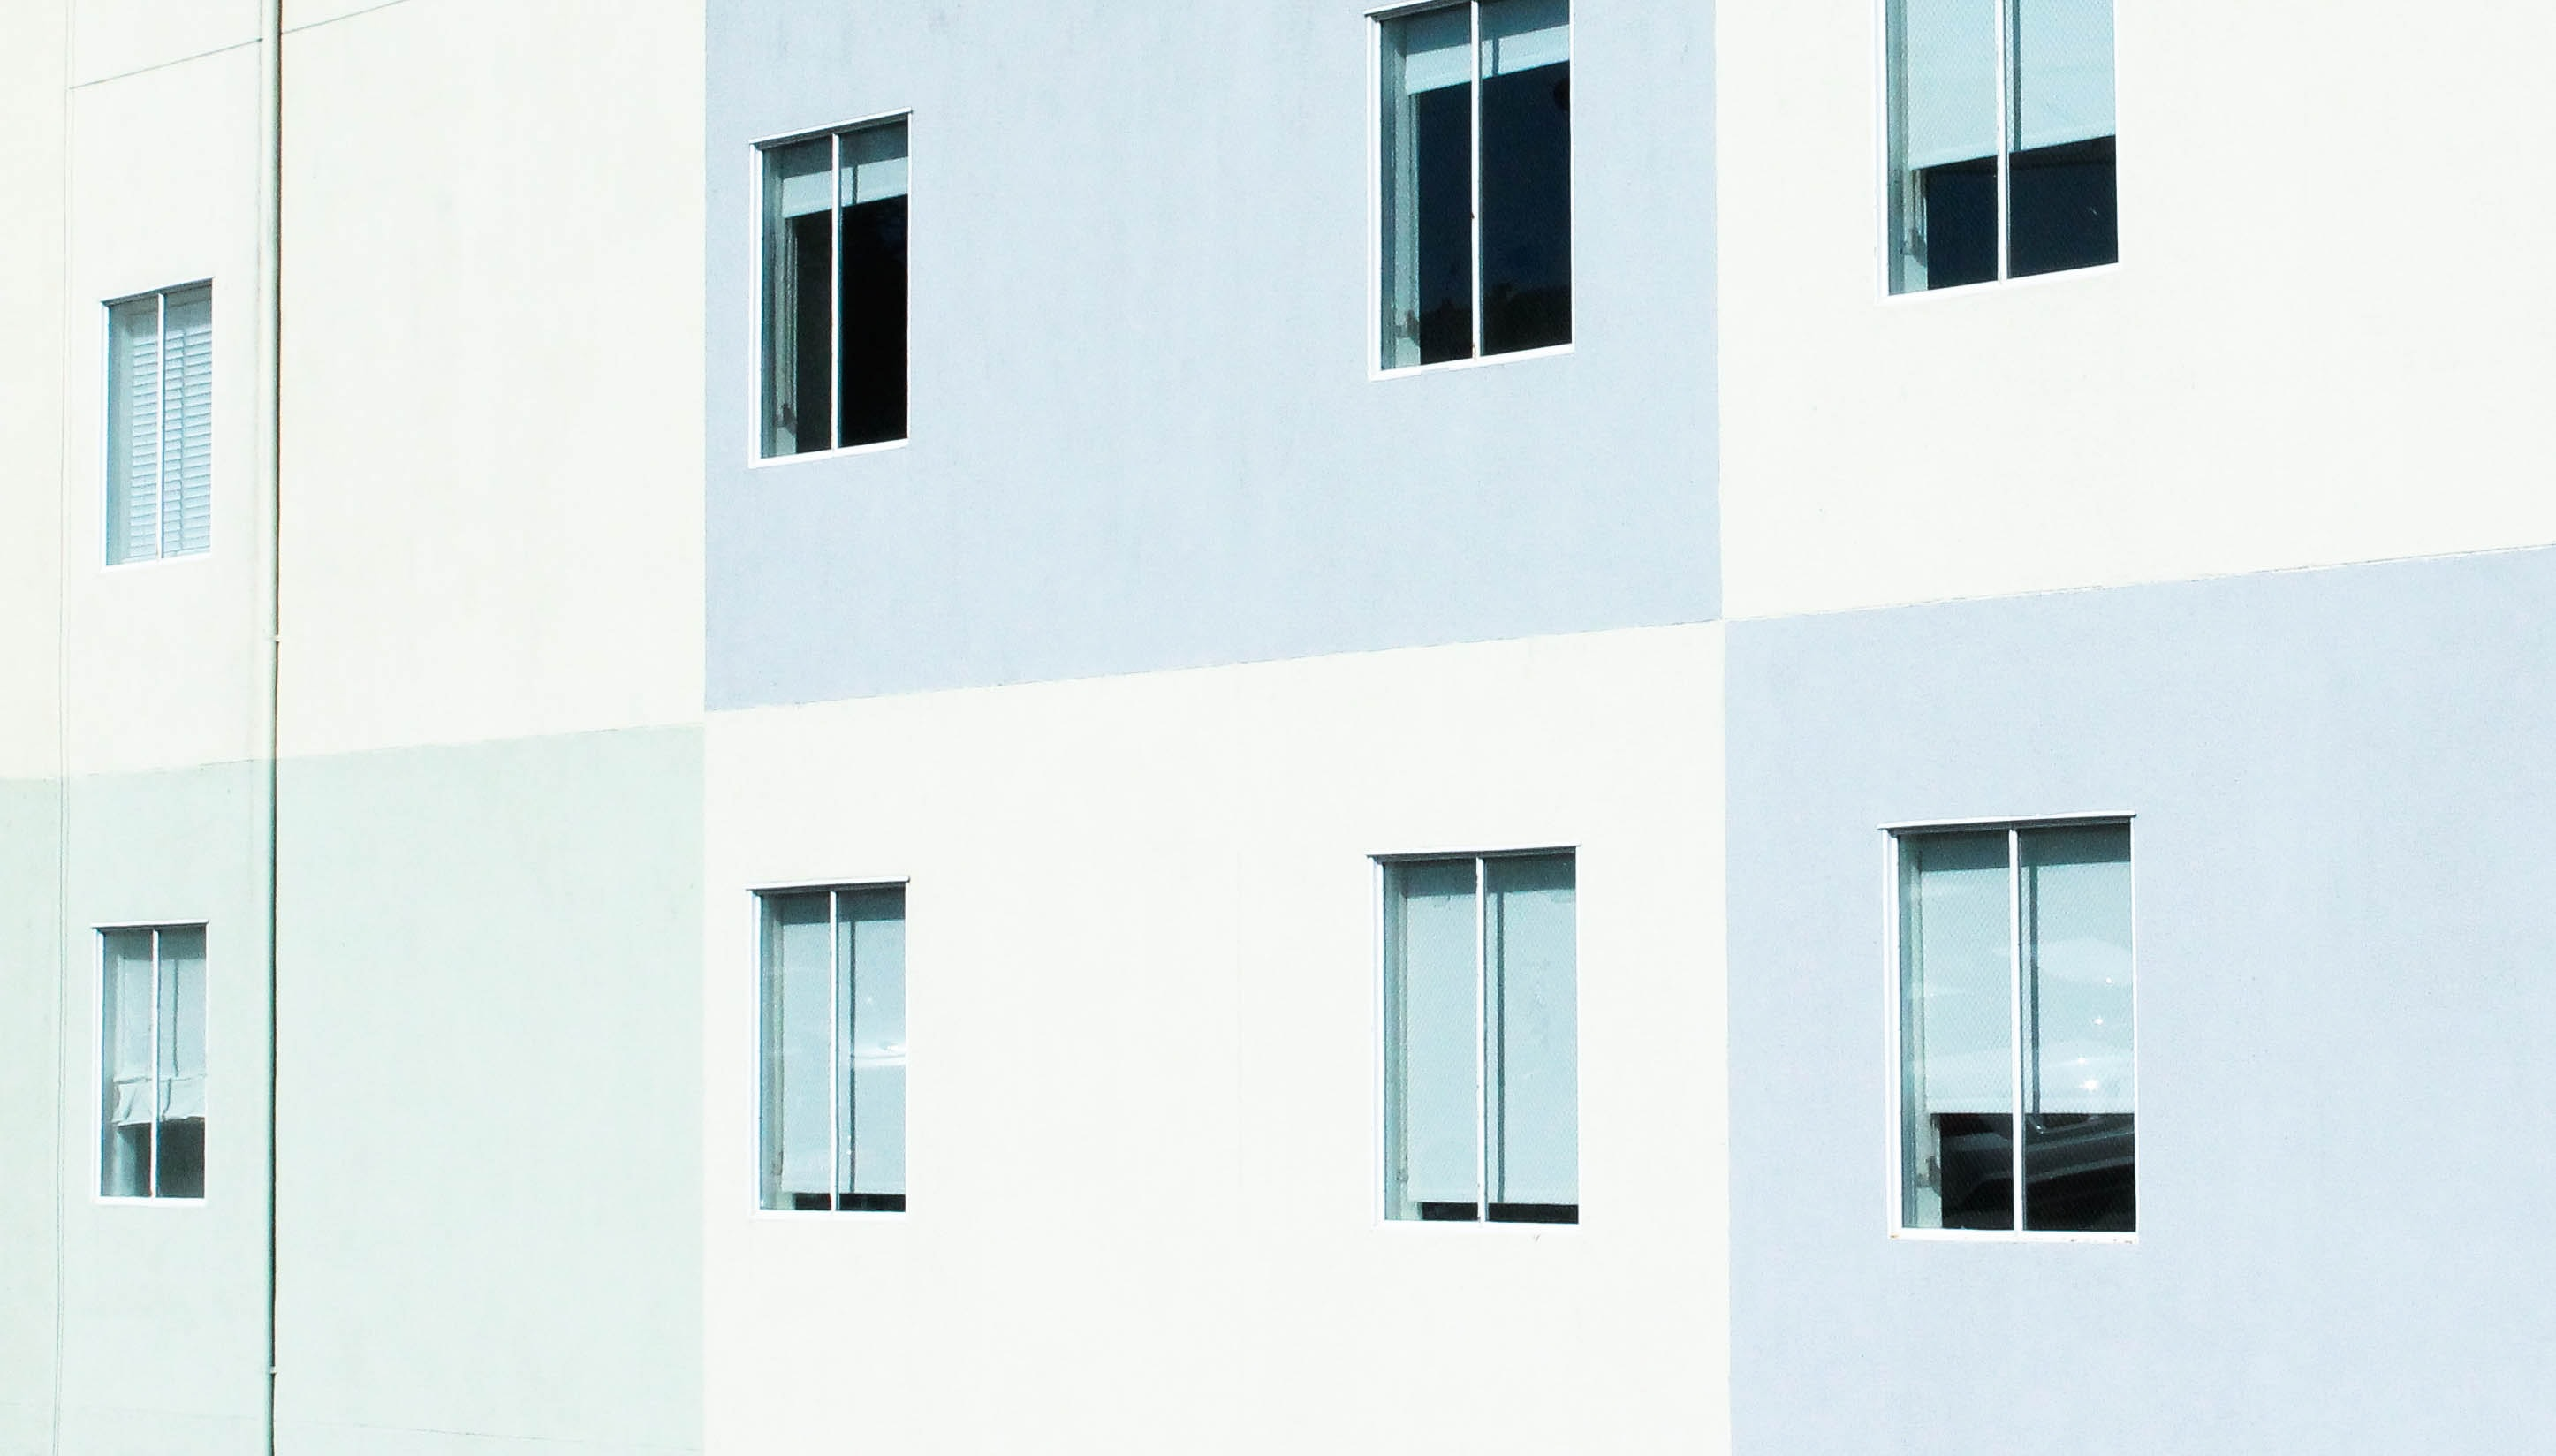 A residential building facade in San Francisco painted in gray and white rectangles